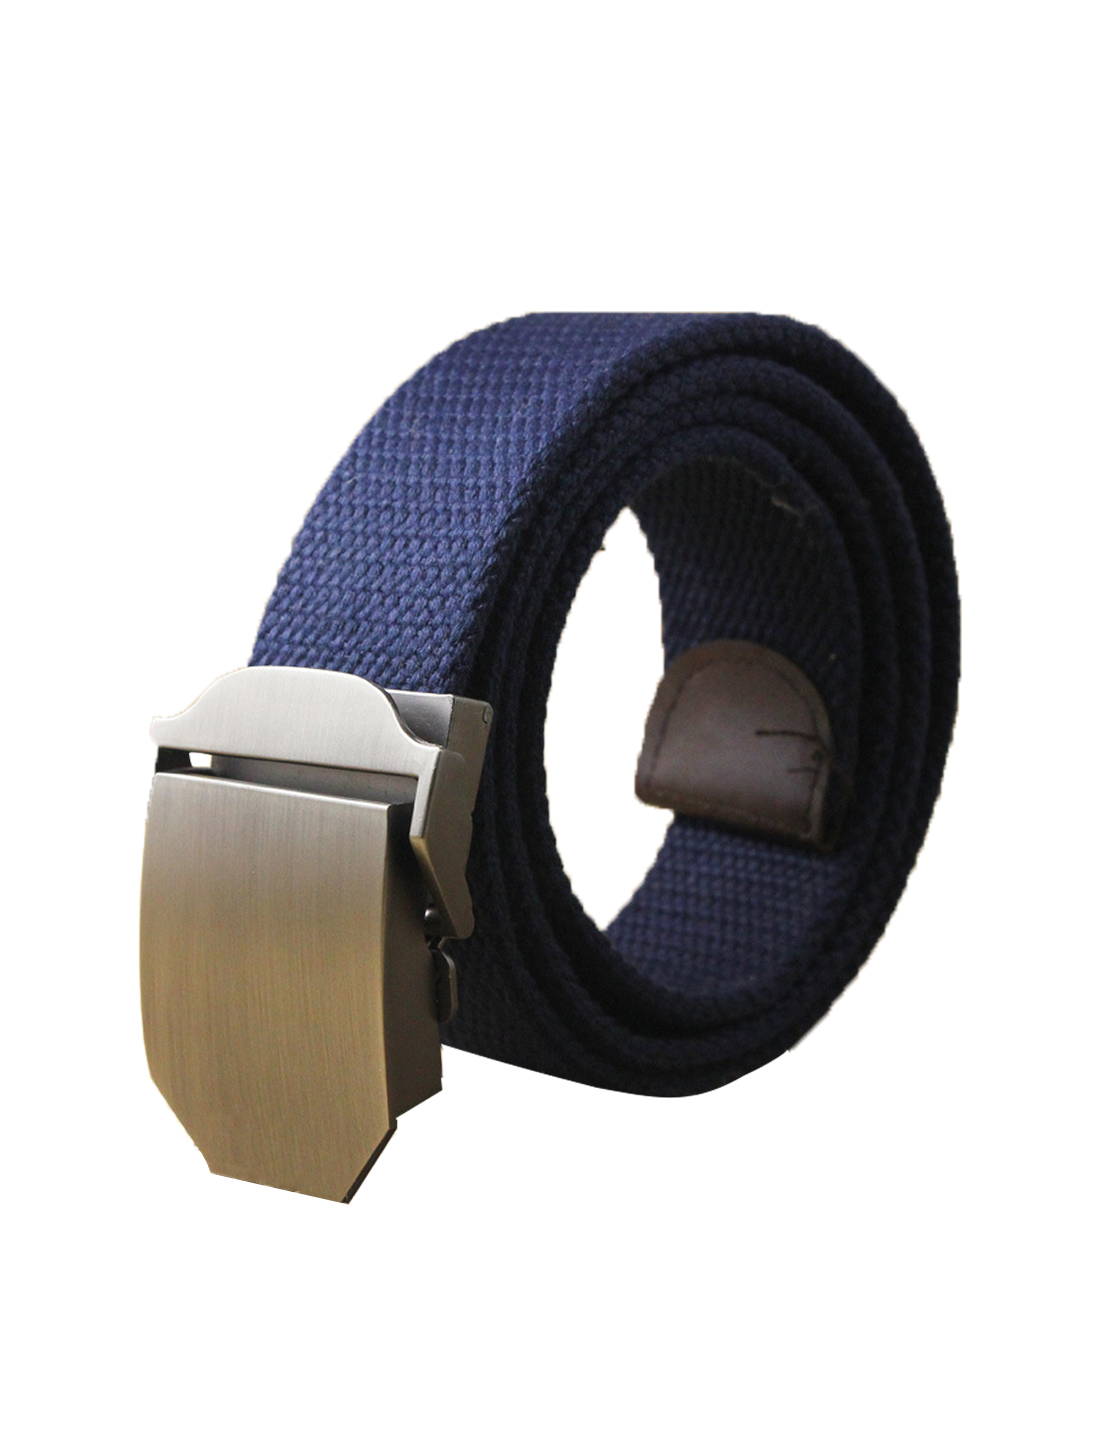 "Men Canvas Automatic Buckle Adjustable Holeless Belt Width 1 1/2"" Dark Blue"